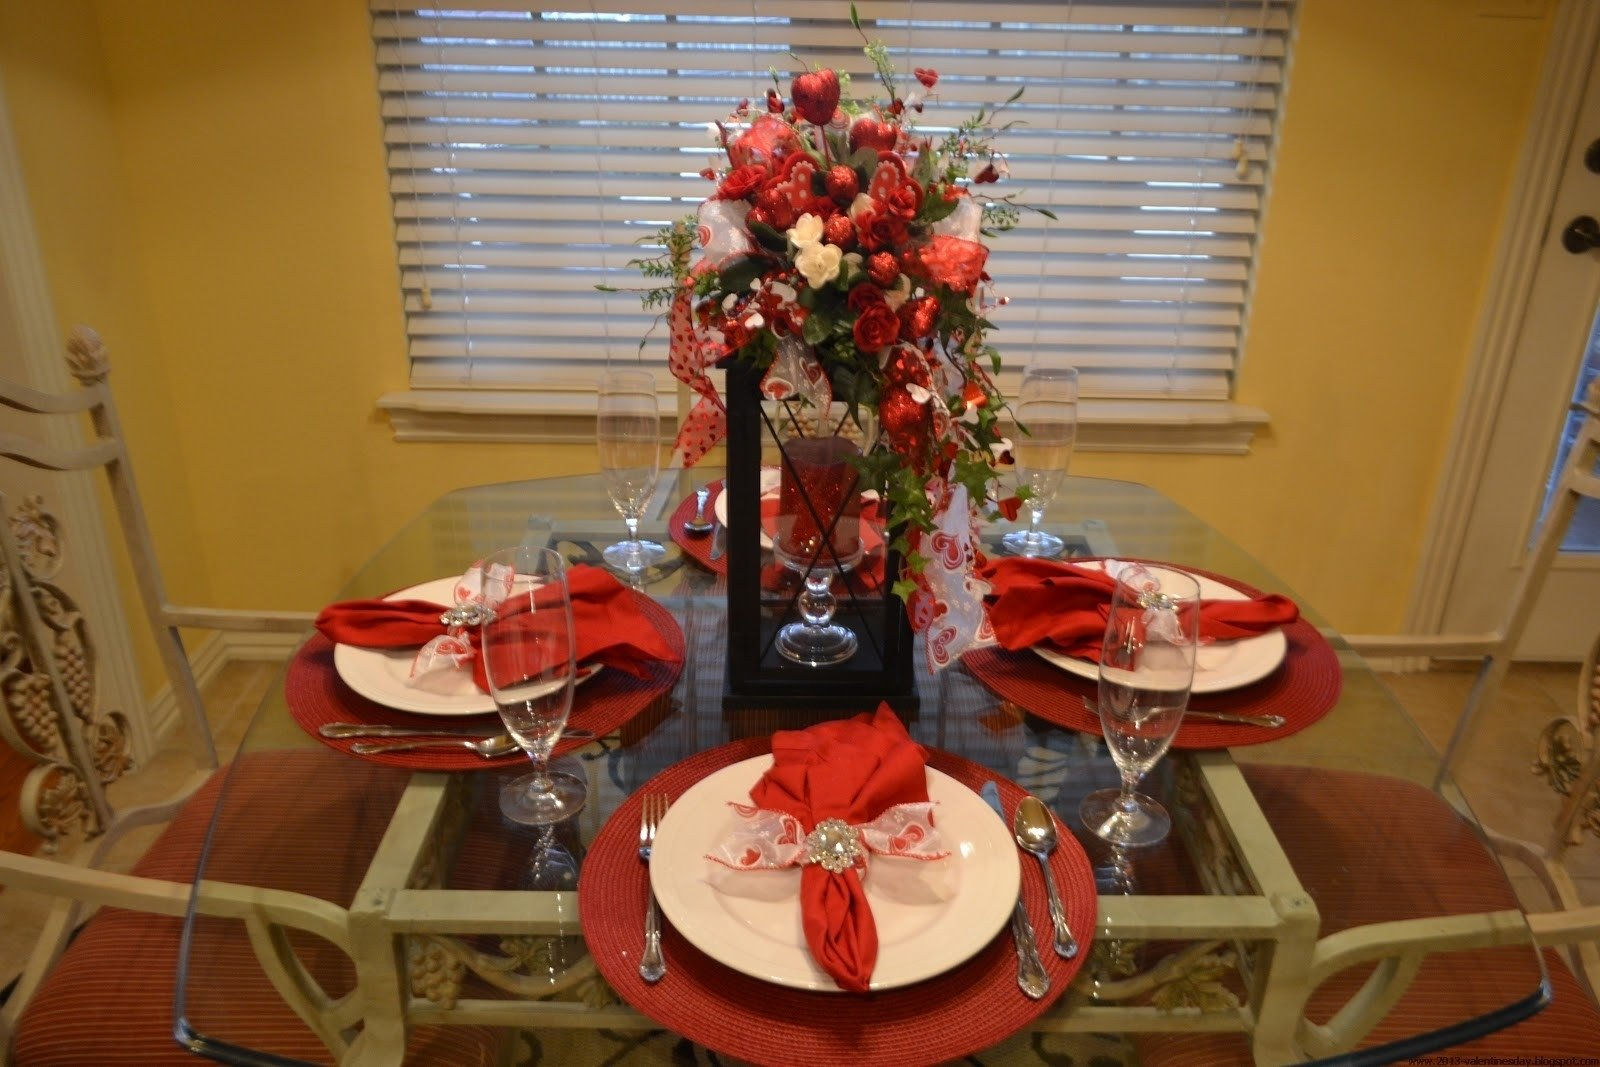 10 Fantastic At Home Valentines Day Ideas decorations romantic family table setting ideas with beautiful day